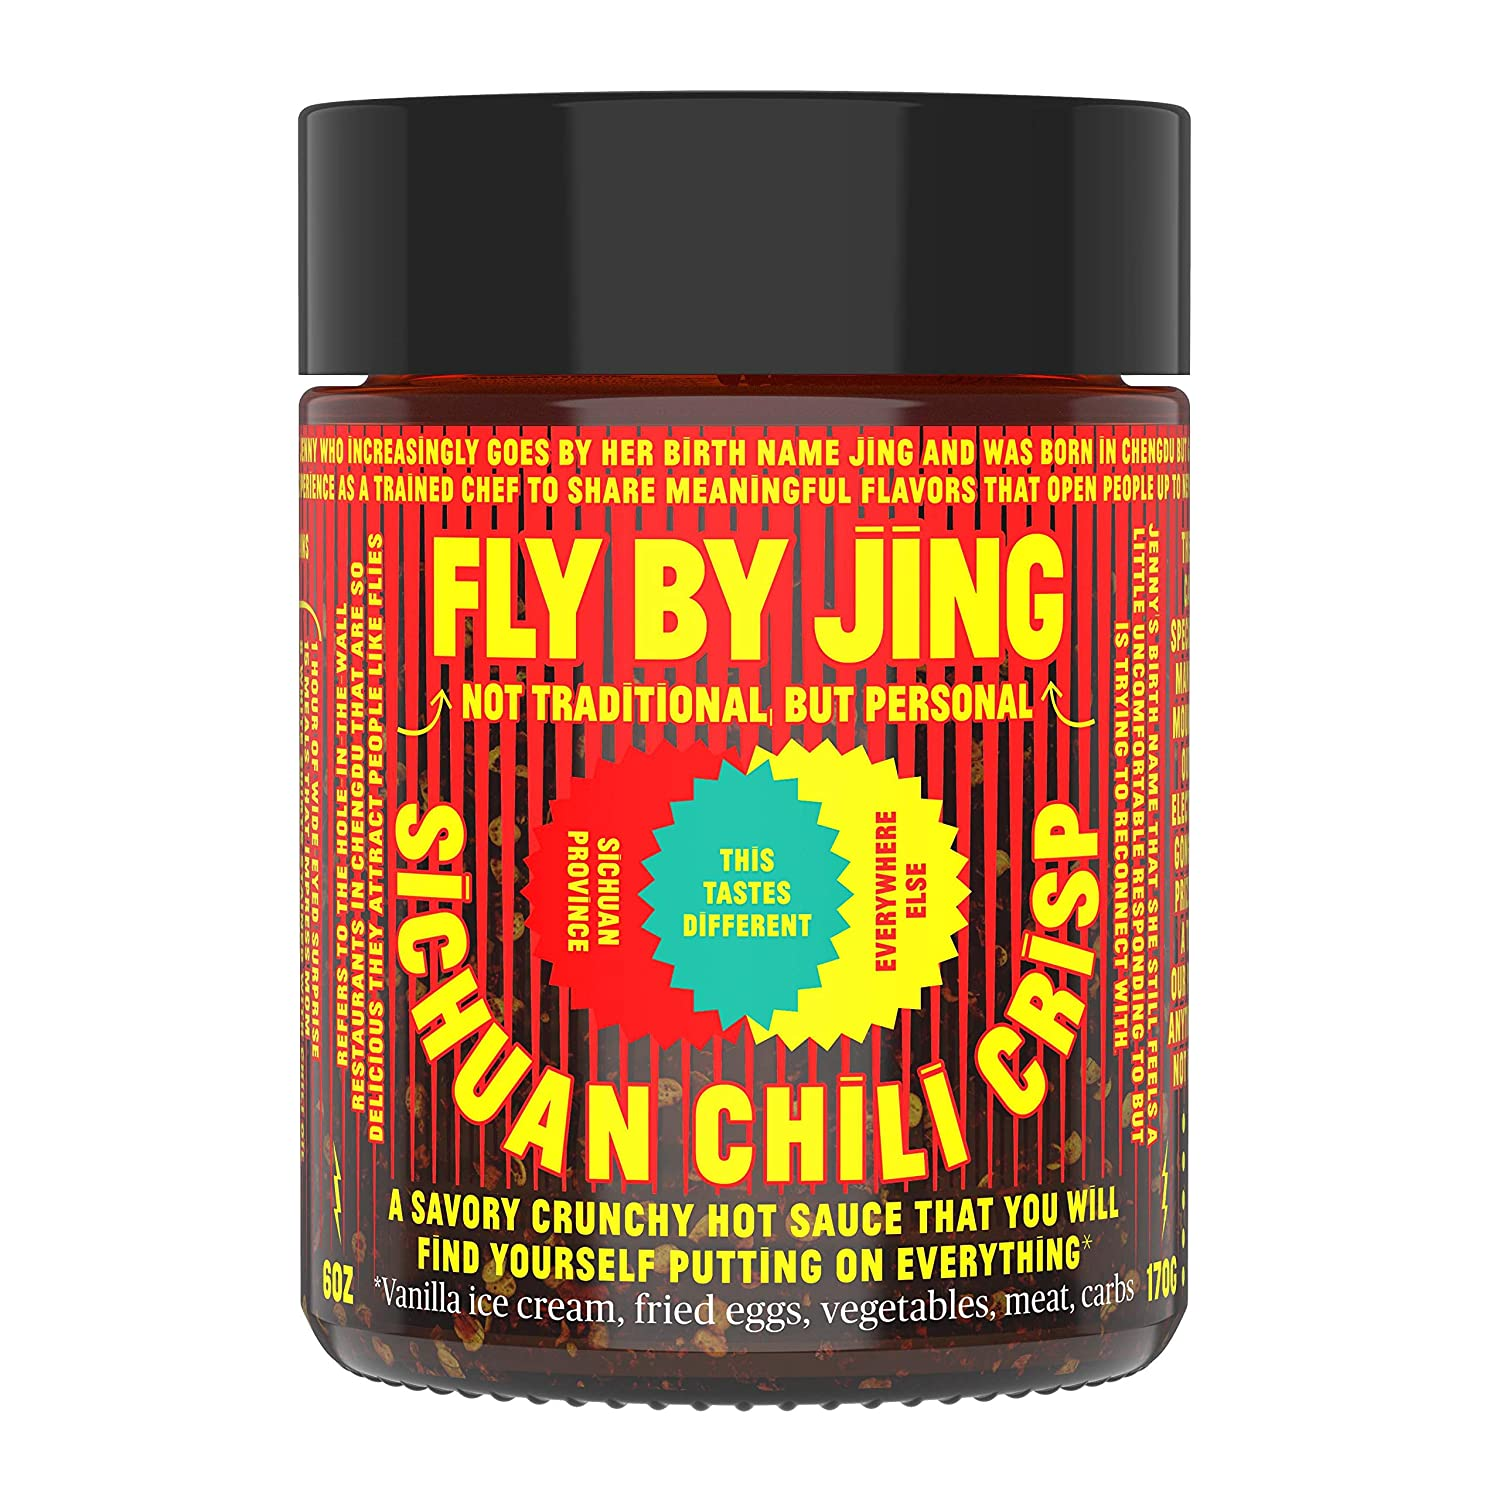 FLY BY JING Sichuan Chili Crisp, Deliciously Savory Umami Spicy Tingly Crispy Gourmet All Natural Vegan Gluten Free Hot Chili Oil Sauce with Sichuan Pepper, Good on Everything